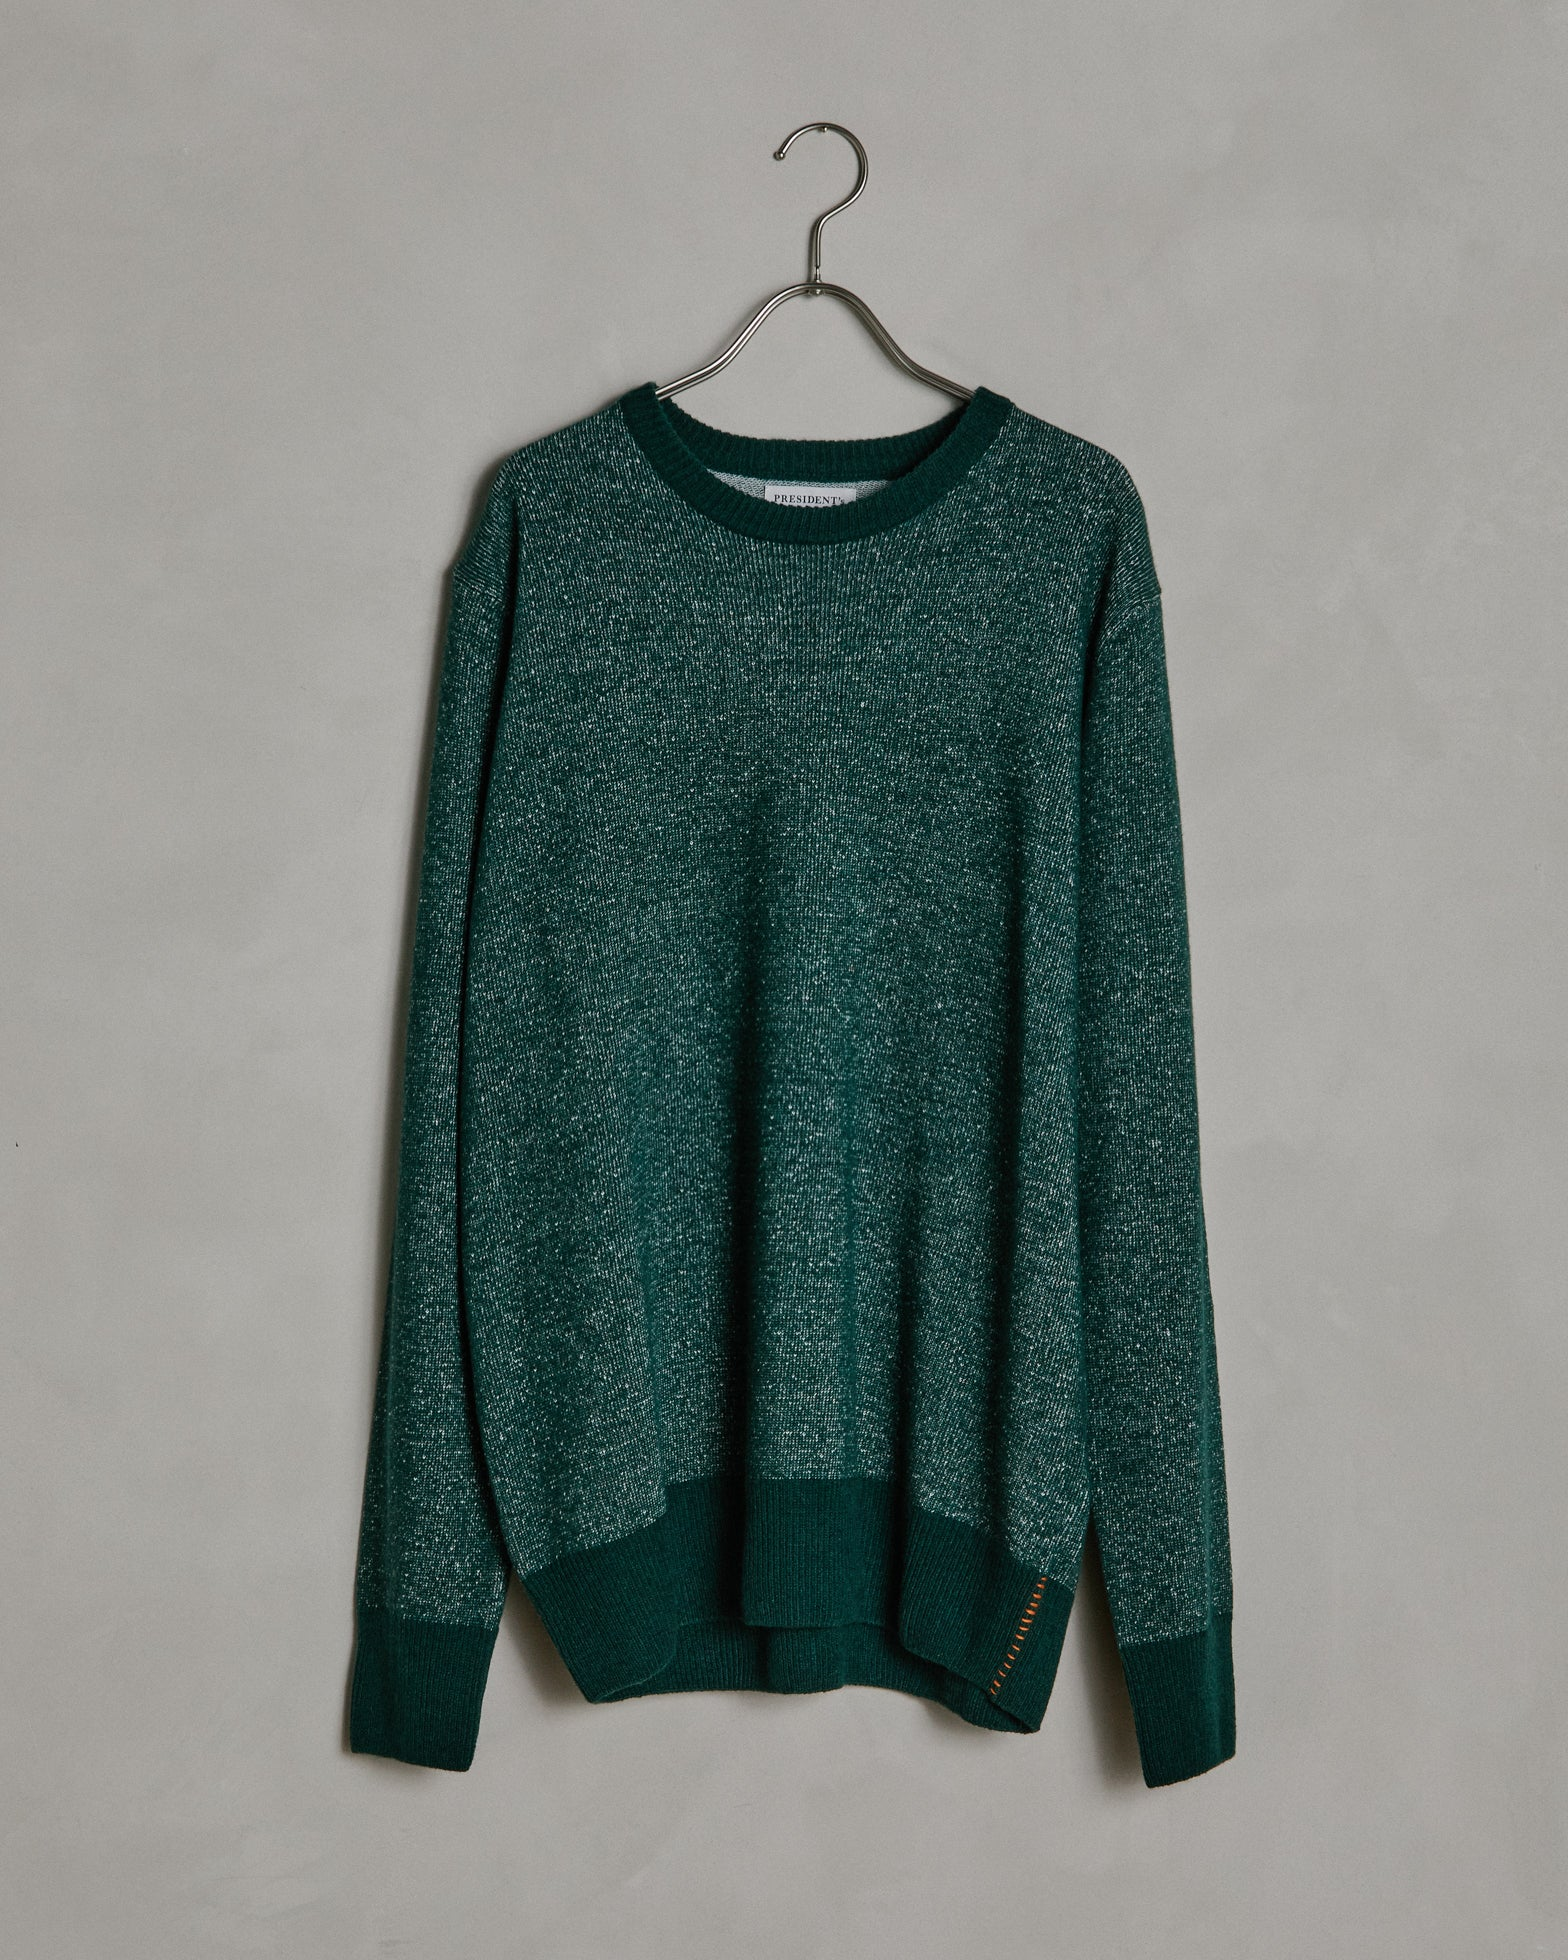 Cotton/Cashmere Crew Neck in Bottle